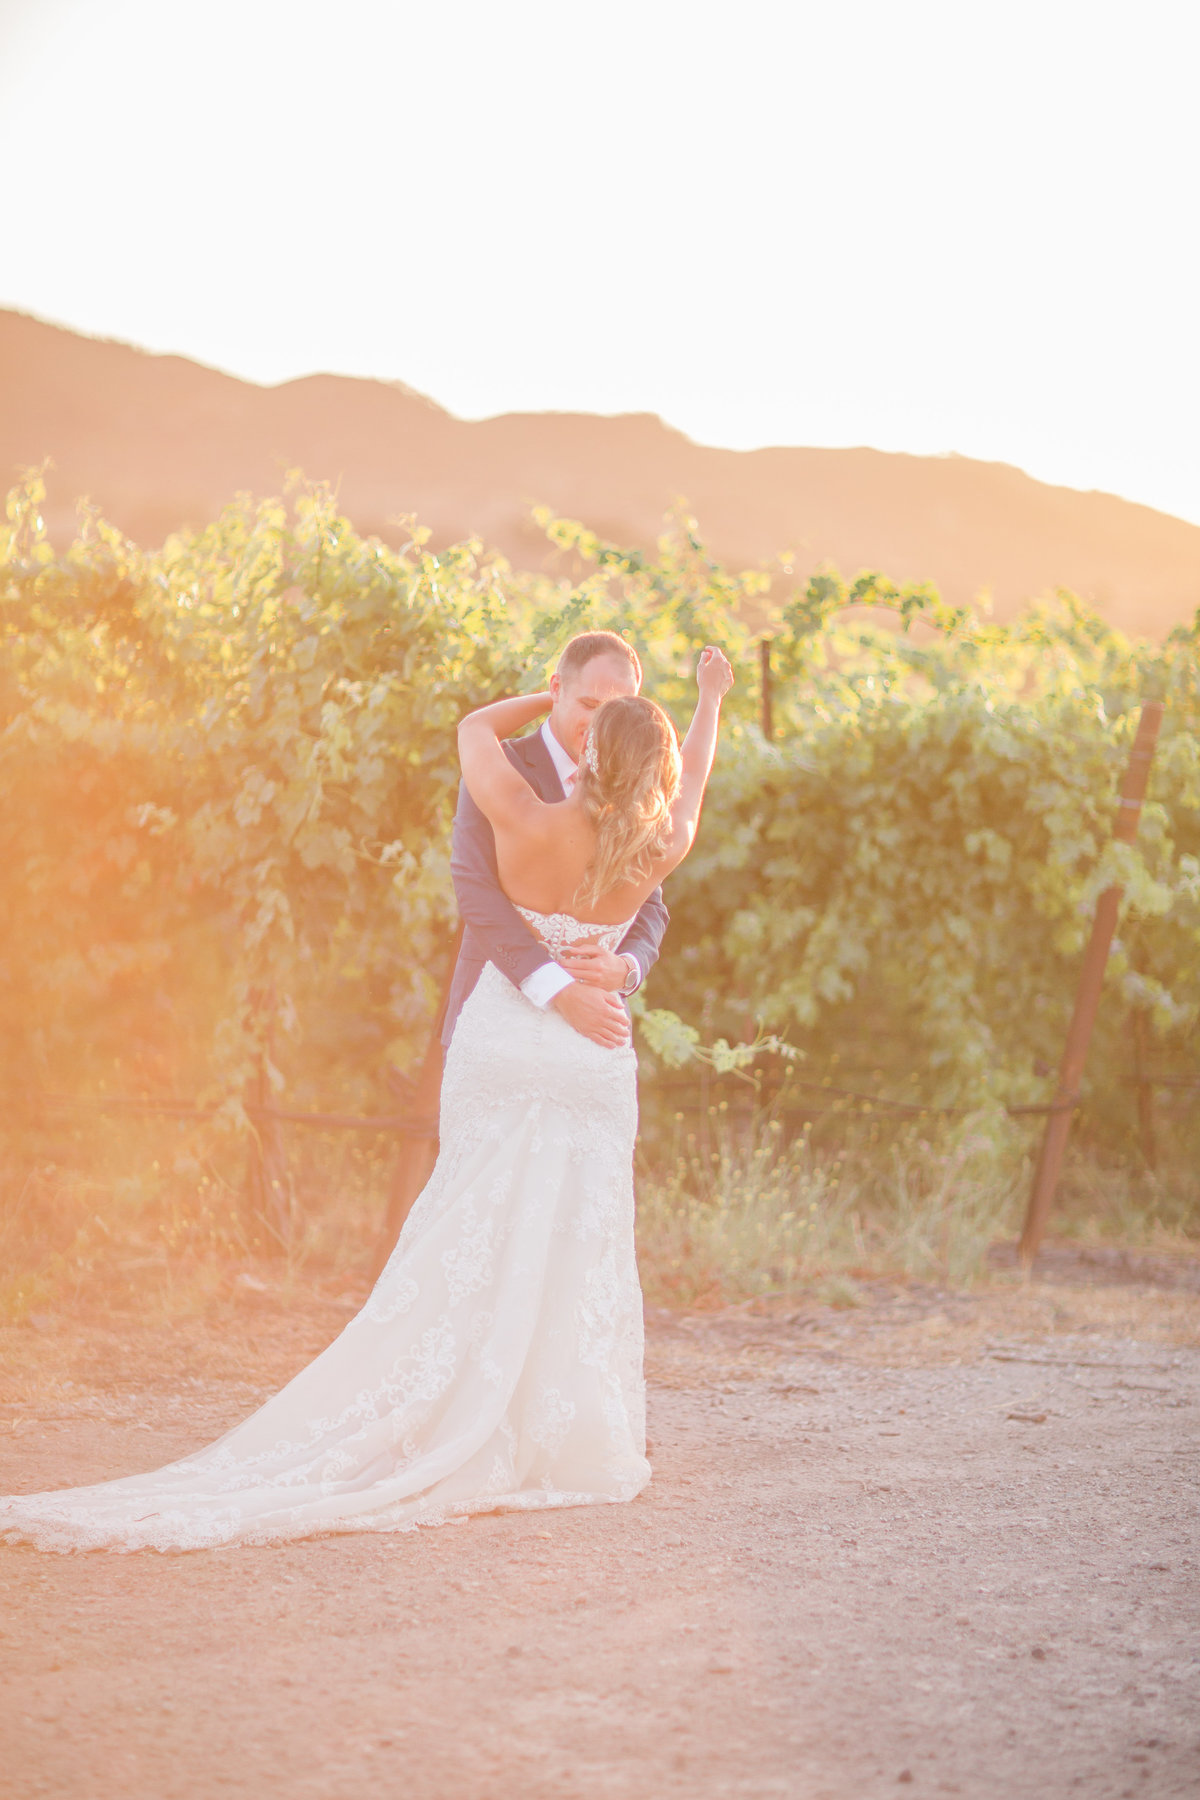 Jenna & Andrew's Oyster Ridge Wedding | Paso Robles Wedding Photographer | Katie Schoepflin Photography566